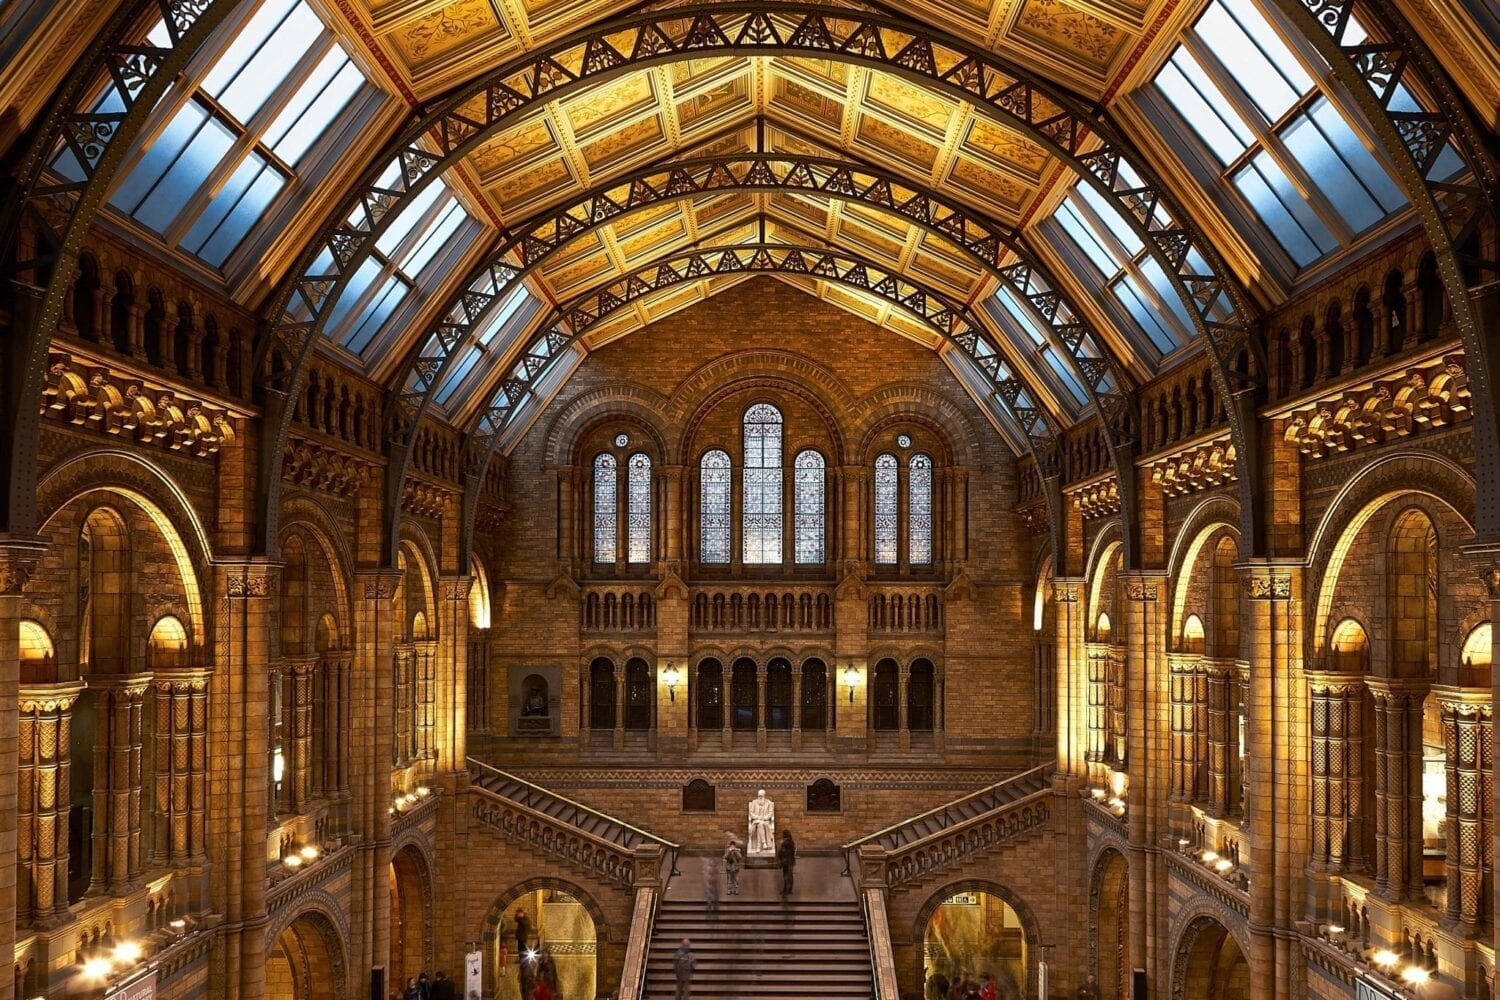 Carrob Controls optimising BEMS in the Art Galleries sector